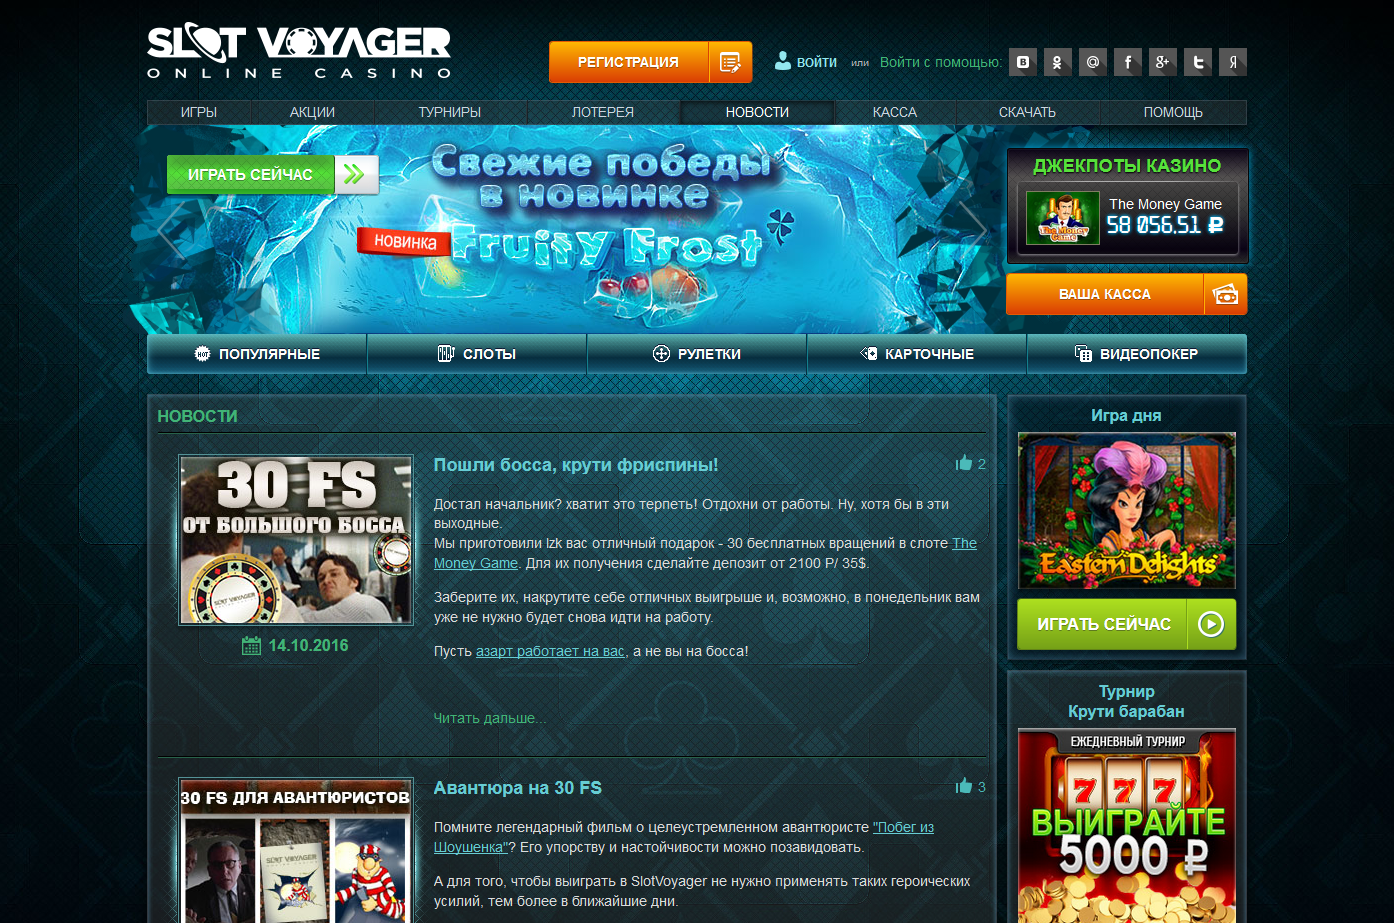 Slot Voyager Casino Closed